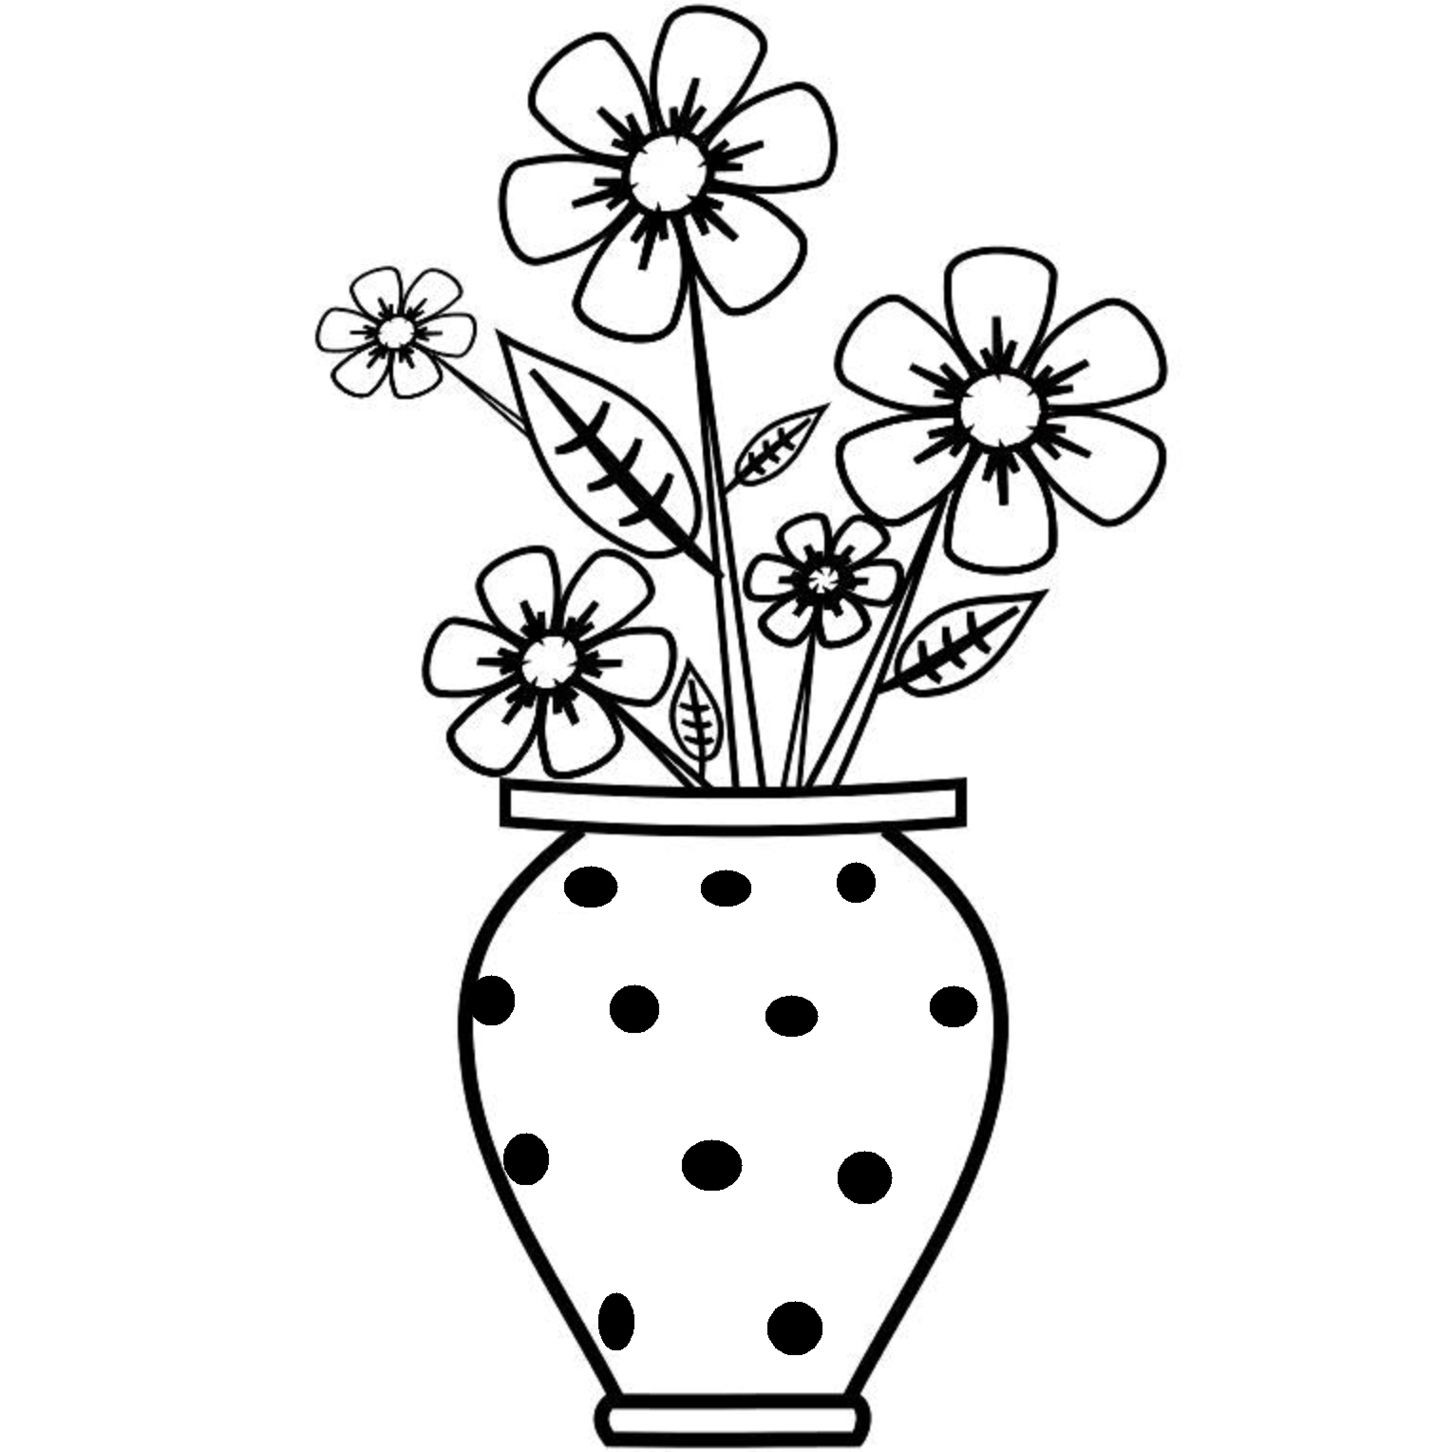 22 Wonderful Recycled Glass Vase 2021 free download recycled glass vase of giant glass vase awesome 28 collection of vase drawing for kids throughout giant glass vase awesome 28 collection of vase drawing for kids